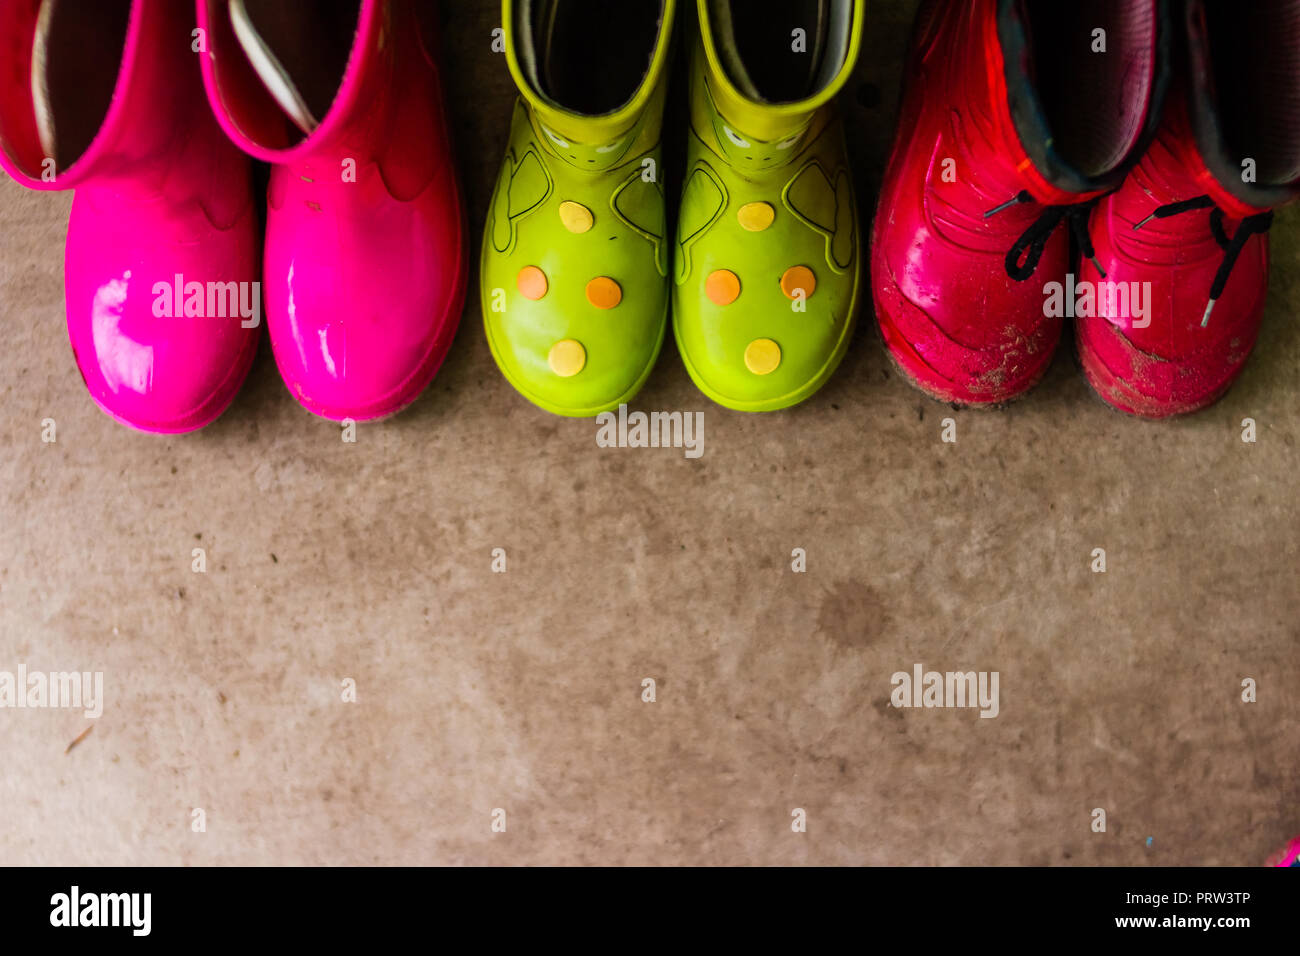 Gardening Boots Stock Photos & Gardening Boots Stock Images - Alamy